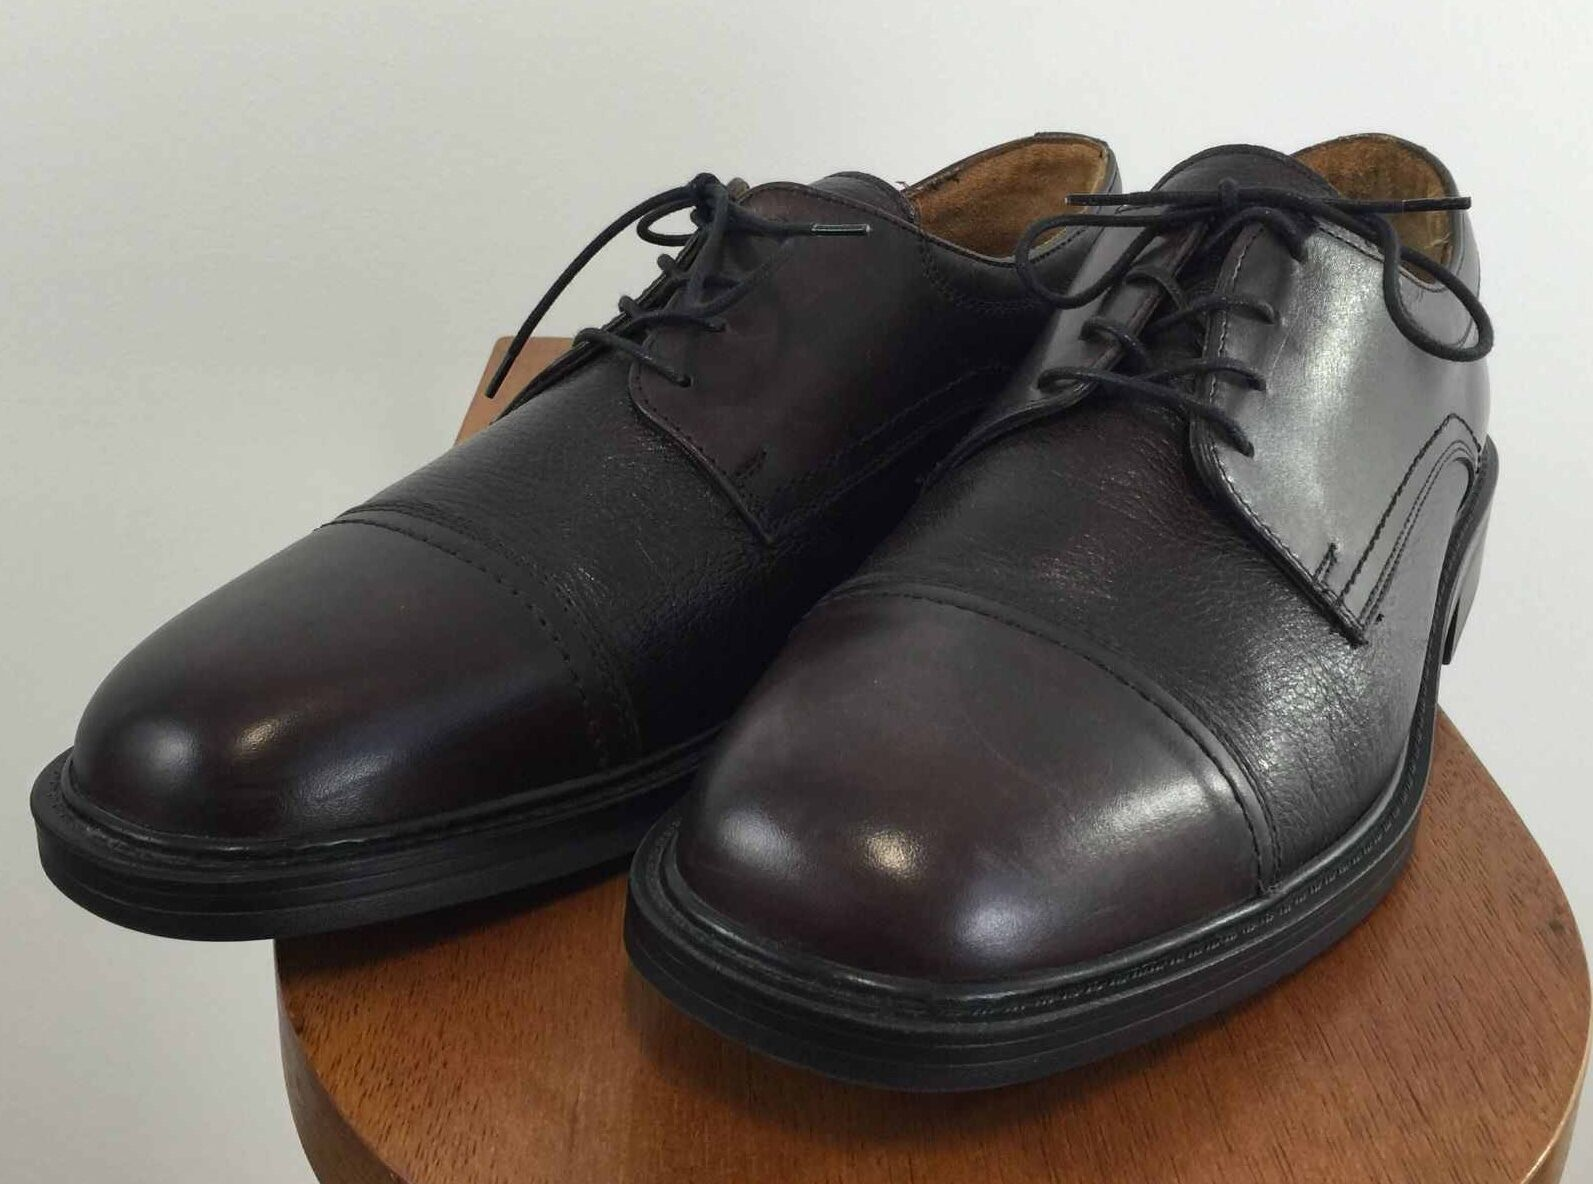 BOSTONIAN Mens Cap Toe Oxford Dark Burgundy Burgundy Burgundy Leather schuhe Made in ITALY Größe 12M b32b86